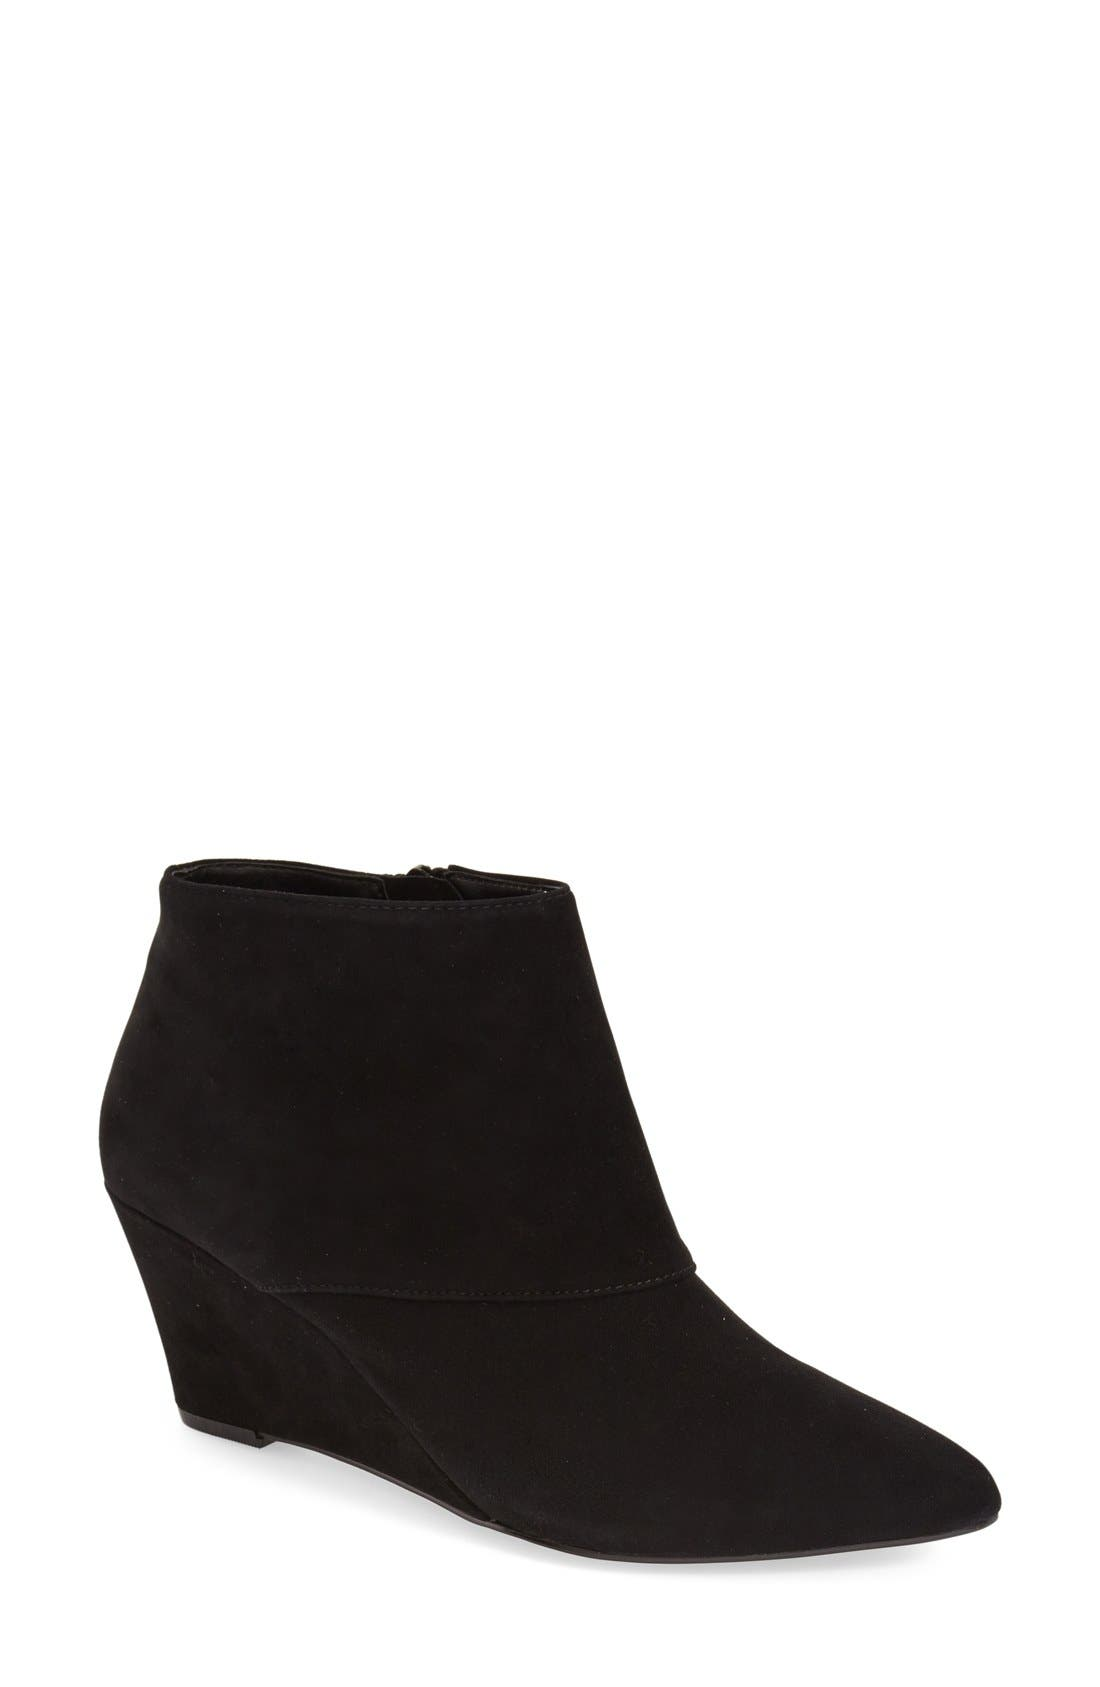 'Galaossi' Pointy Toe Wedge Bootie, Main, color, 003